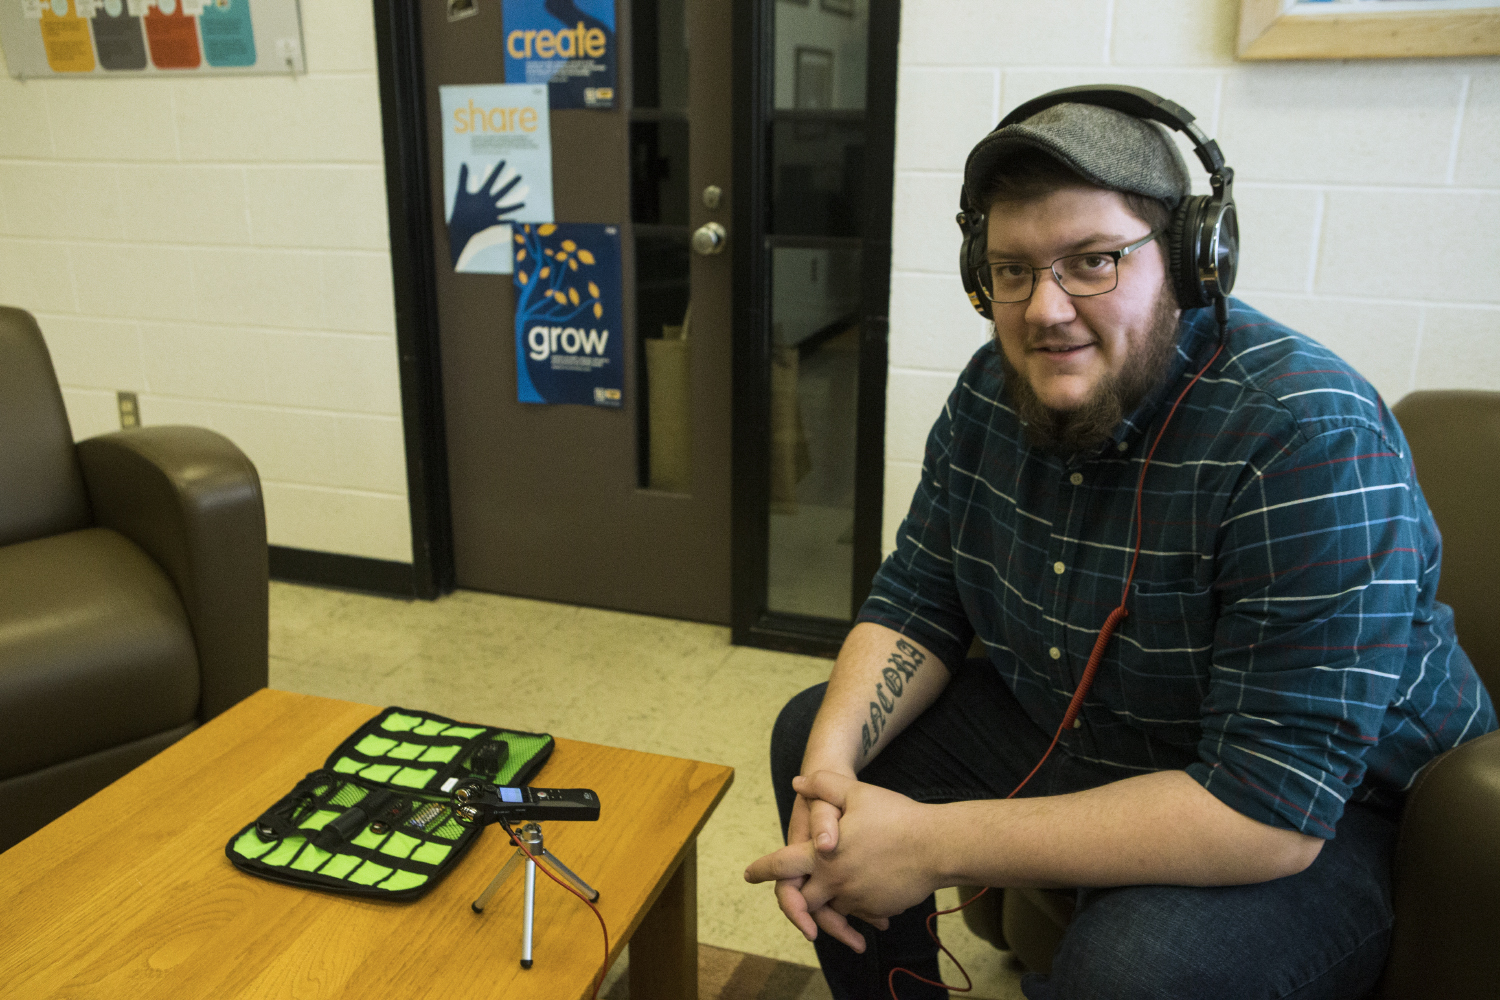 Graduate student Aiden Bettine with a Trans Oral History kit at the UI Main Library on April 29, 2019. The kits are distributed to various locations in Iowa so that transgendered/nonbinary individuals can record their stories.